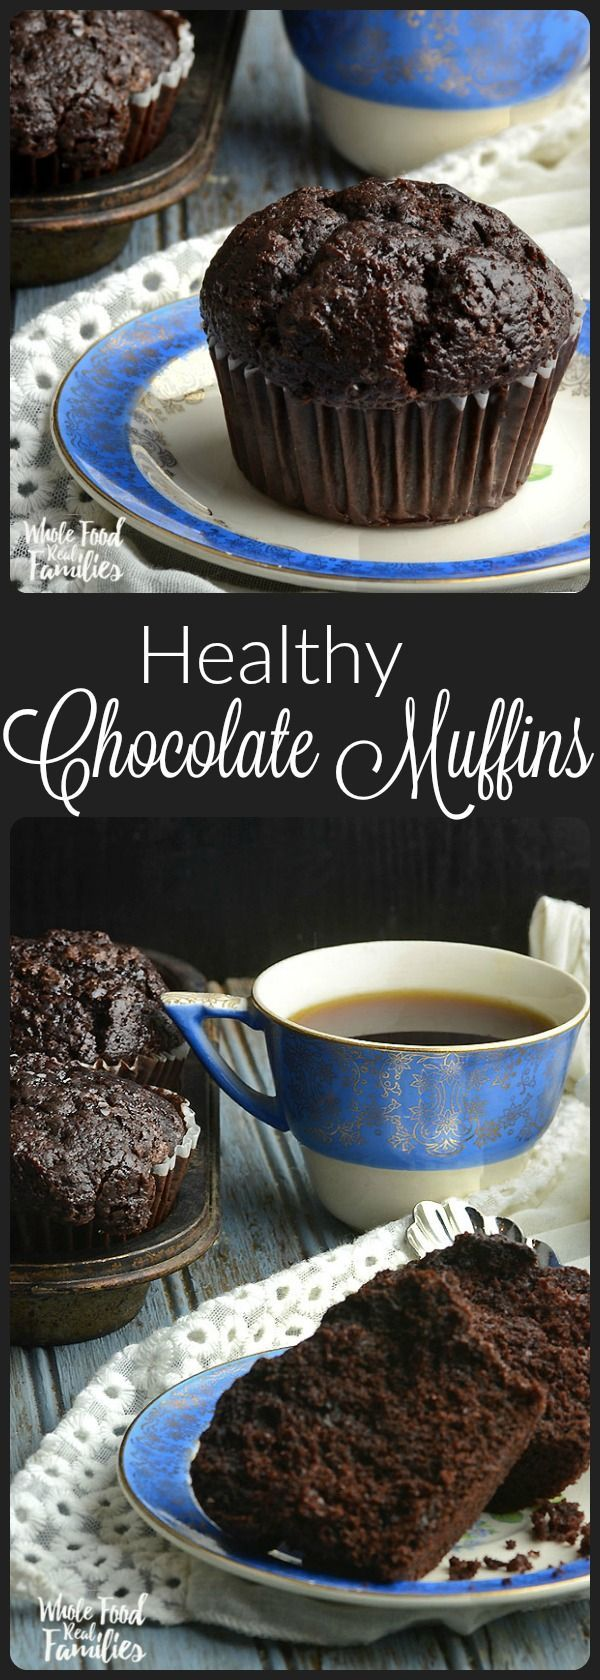 These Healthy Chocolate Muffins help you eat well and have your chocolate too! They are richly chocolate, so my kids love them. And healthy enough that I can actually serve them for breakfast with no guilt! Just a tip: these freeze great! Just thaw them in the fridge for a quick breakfast or the lunchbox!